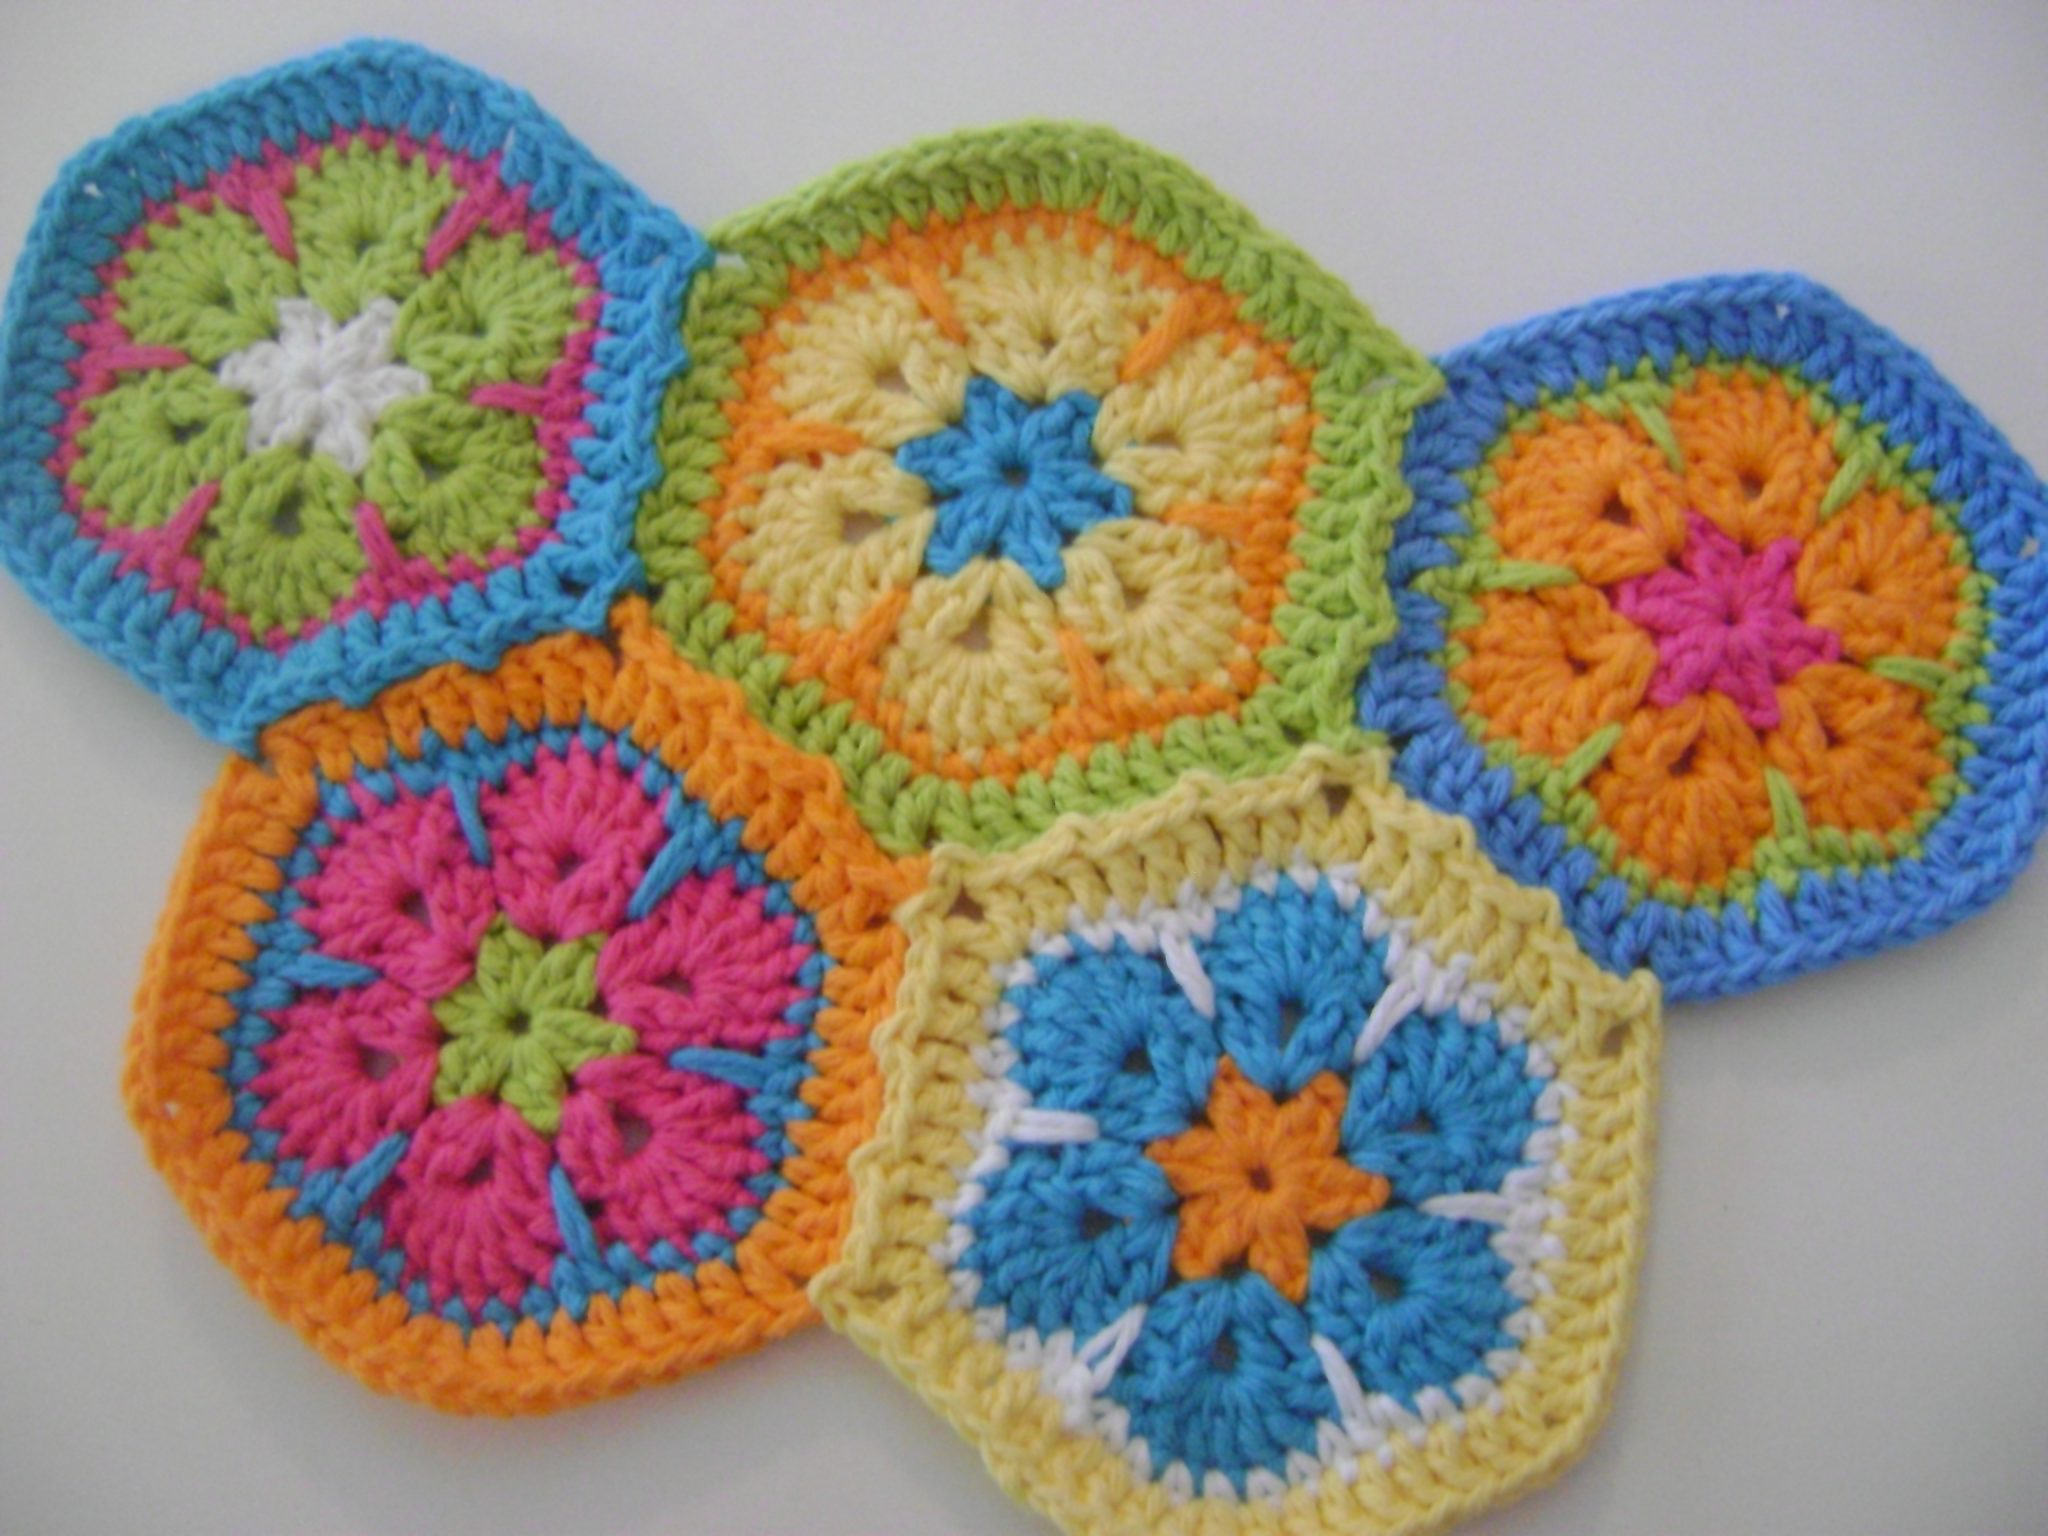 African Flower Hexagon Crochet Pattern Free : Hexagons On Point in 10 Free Patterns